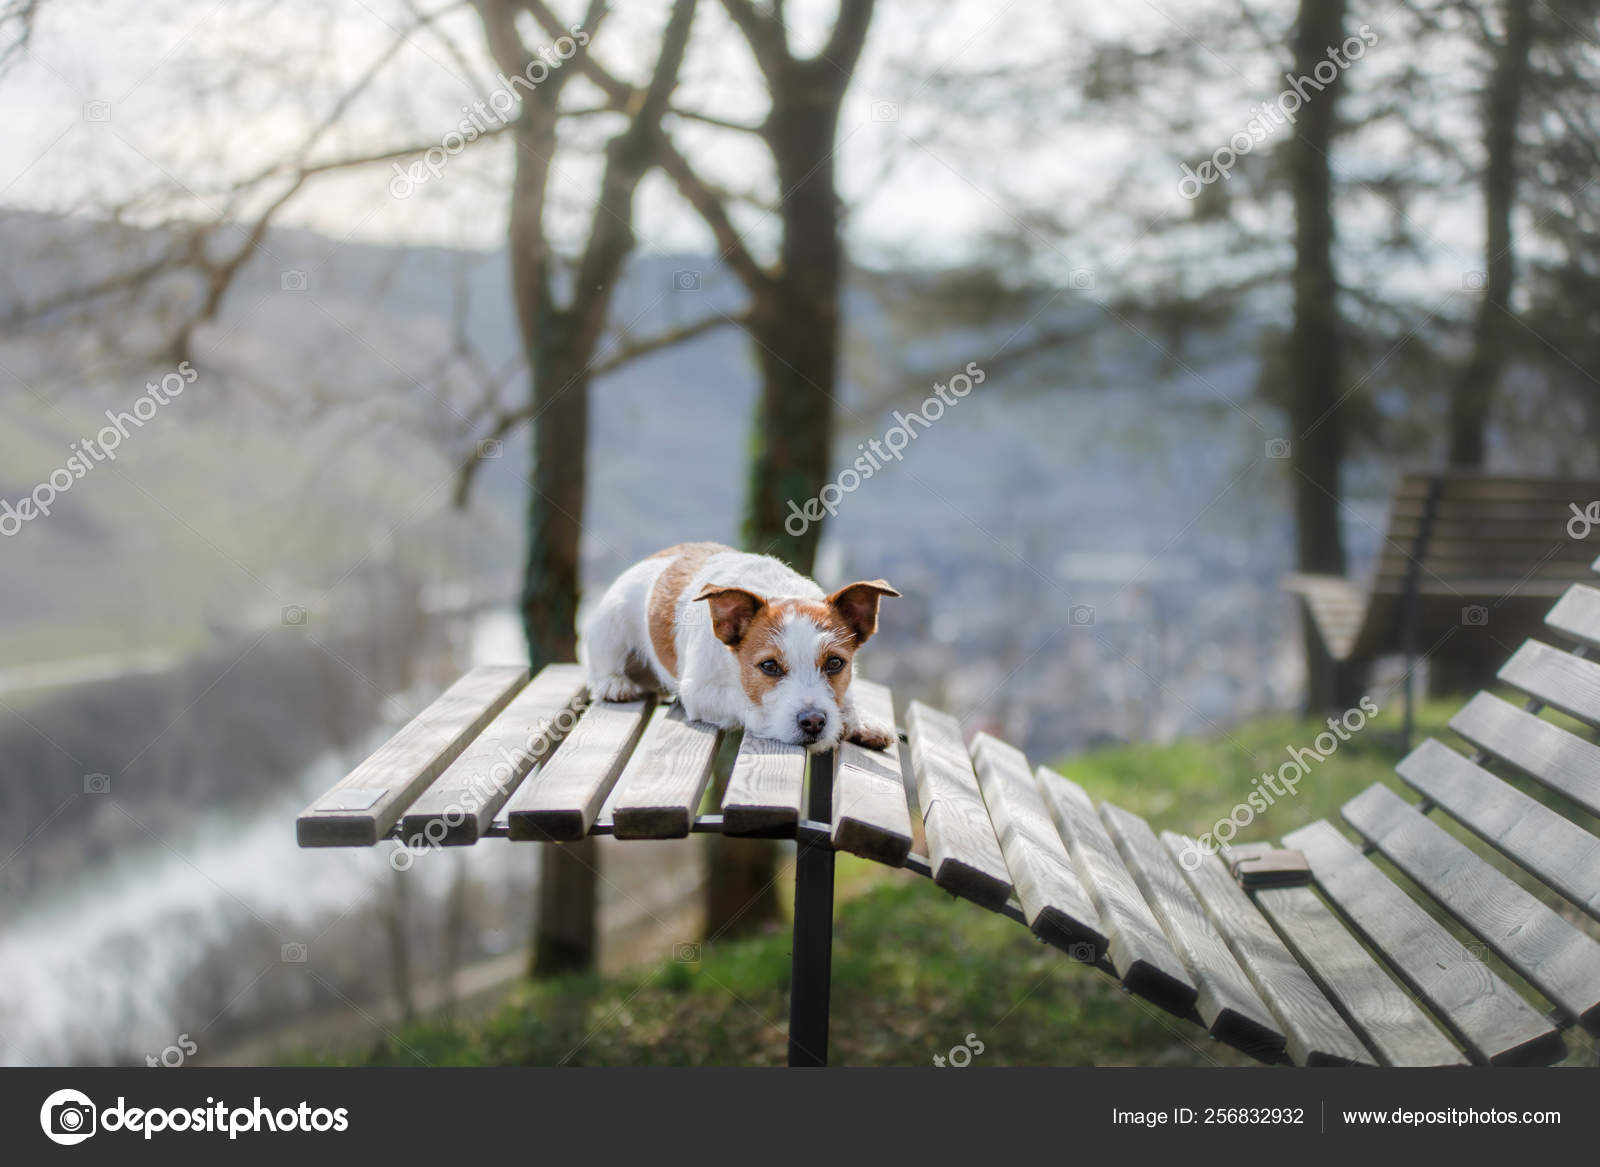 Marvelous A Small Dog Sits On A Bench And Looks Cute Jack Russell In Frankydiablos Diy Chair Ideas Frankydiabloscom